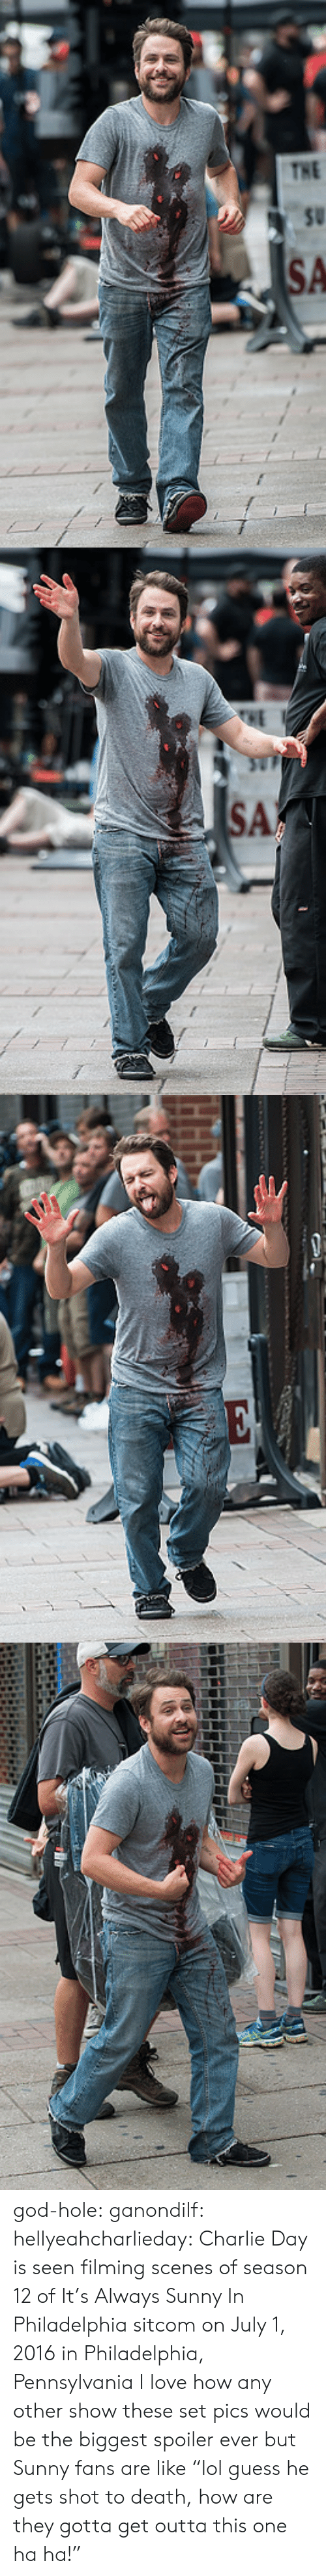 """2016 In: god-hole: ganondilf:  hellyeahcharlieday:  Charlie Day is seen filming scenes of season 12 of It's Always Sunny In Philadelphia sitcom on July 1, 2016 in Philadelphia, Pennsylvania  I love how any other show these set pics would be the biggest spoiler ever but Sunny fans are like """"lol guess he gets shot to death, how are they gotta get outta this one ha ha!"""""""